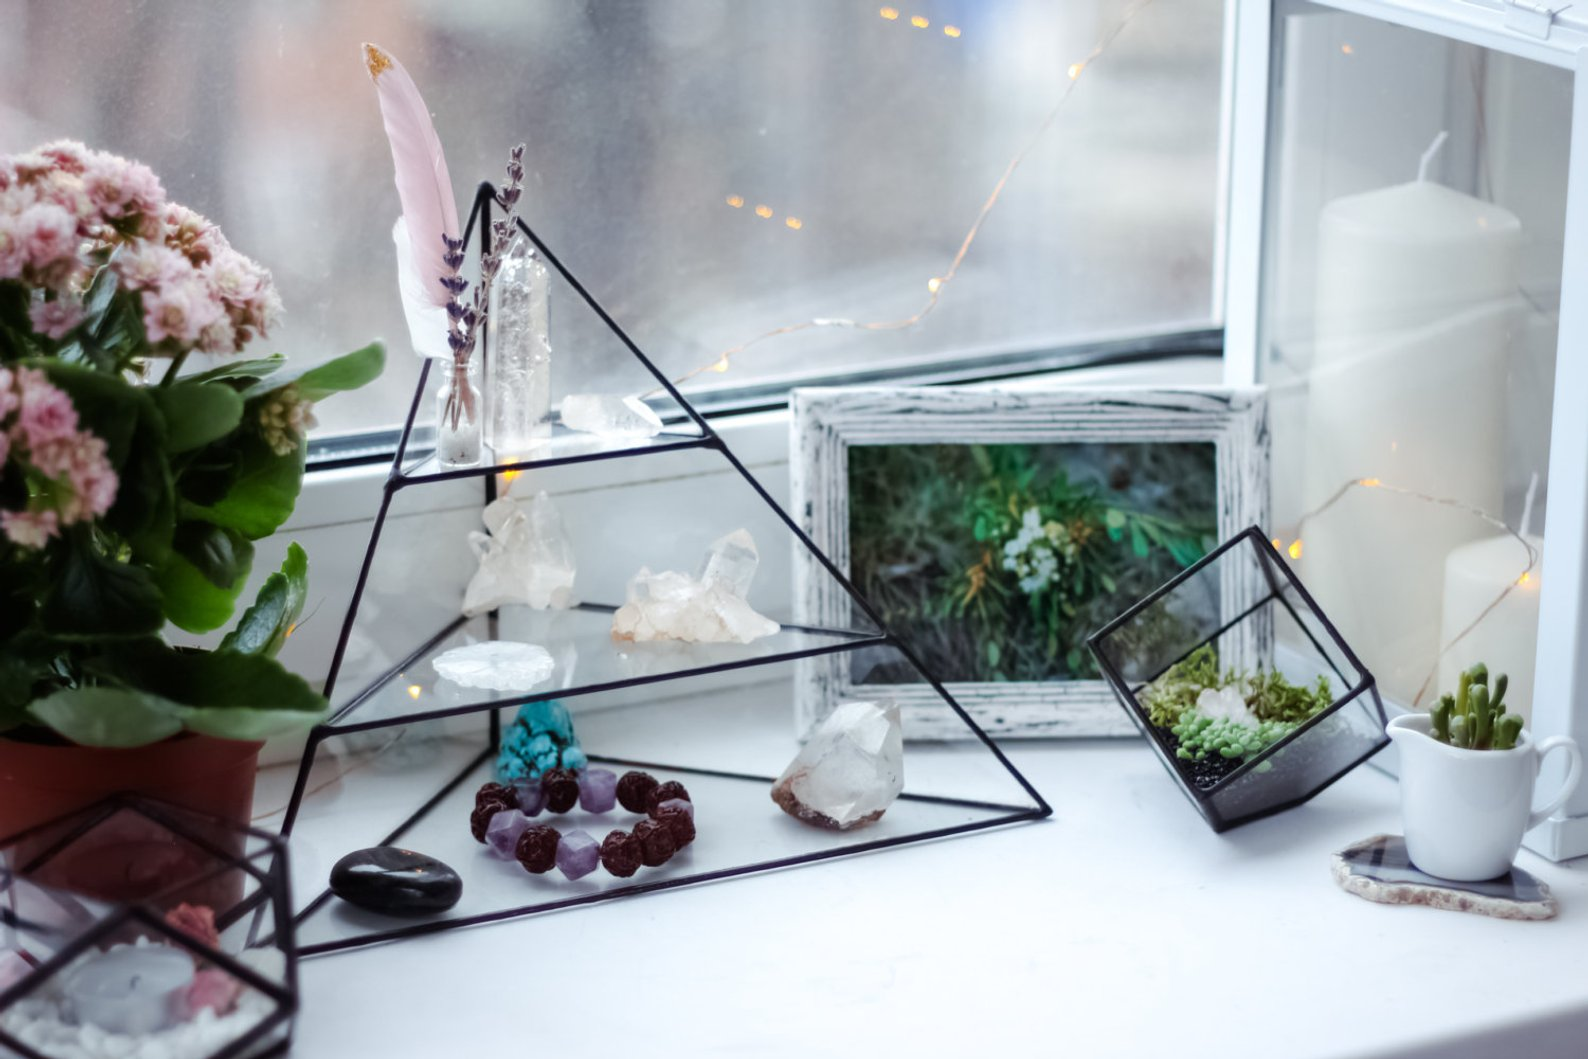 Glass Pyramids for Crystals and Terrariums By Stereometric Design